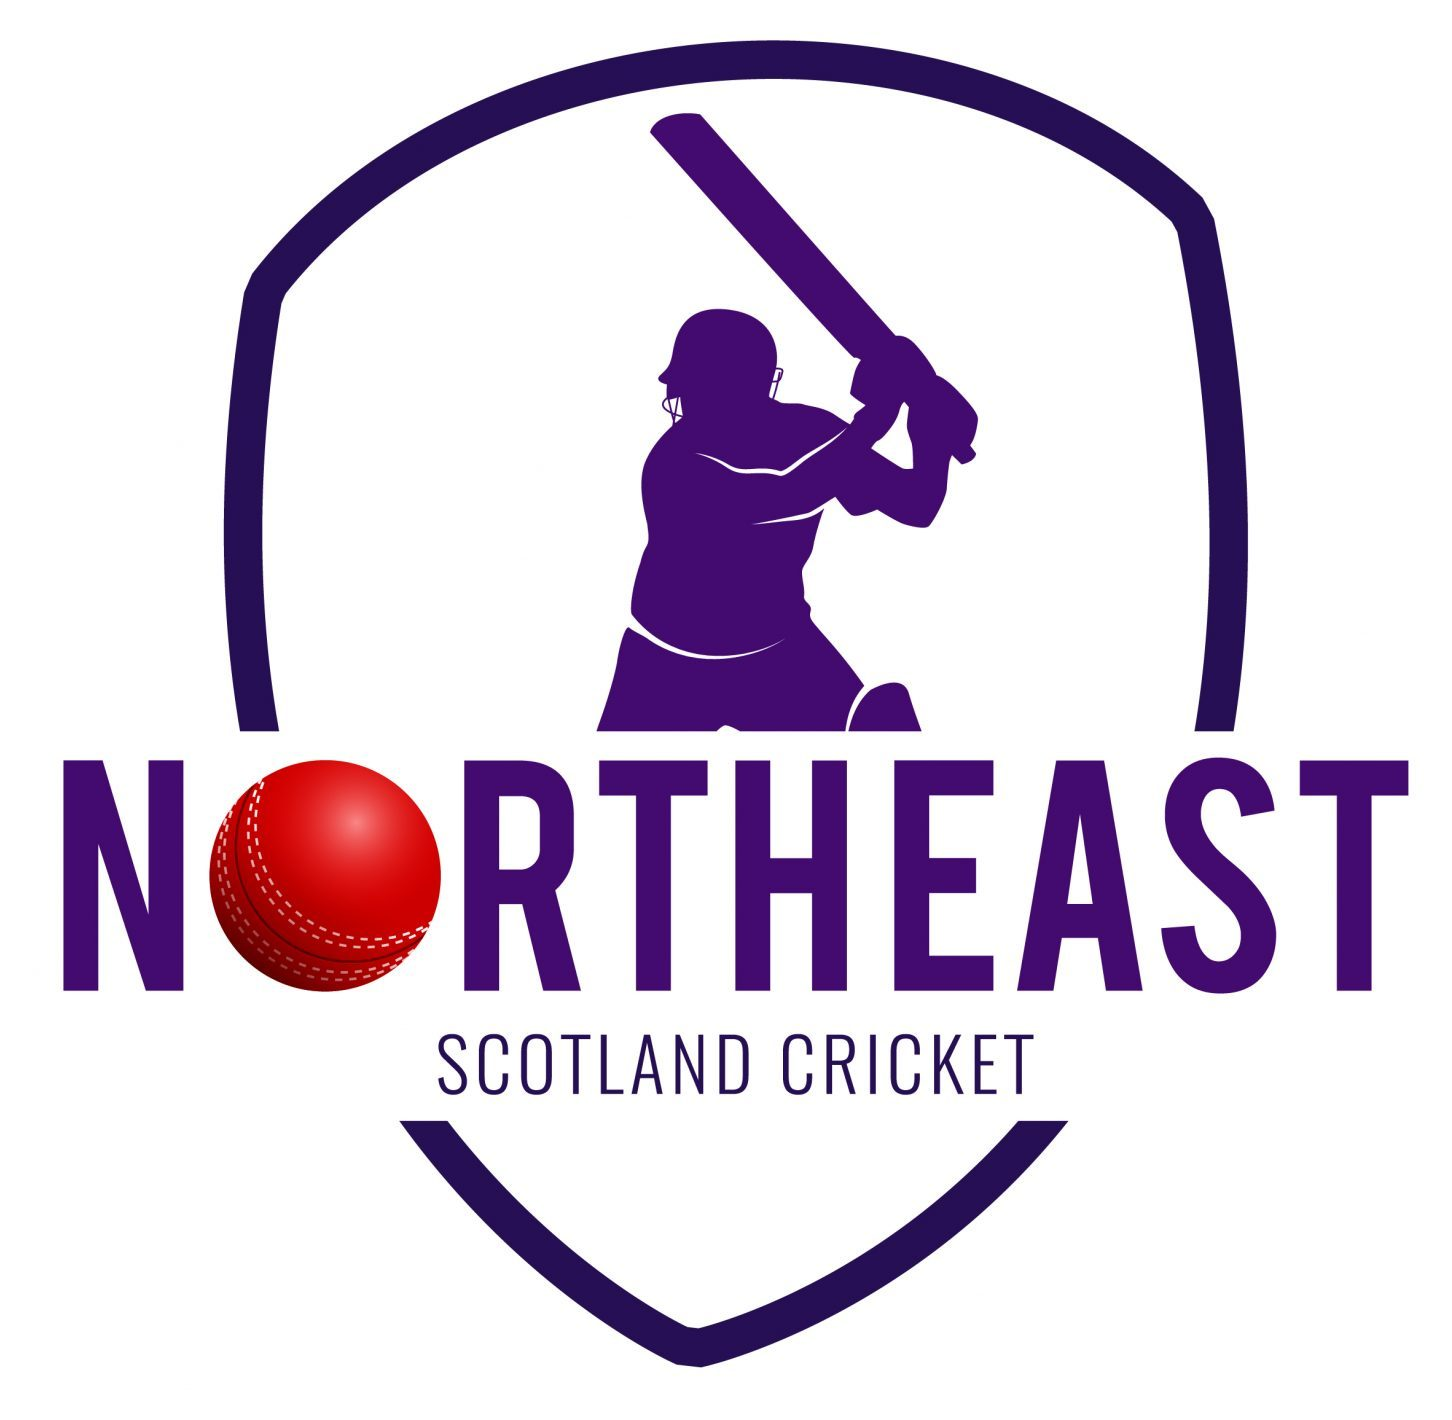 North East Scotland Cricket_Version 1